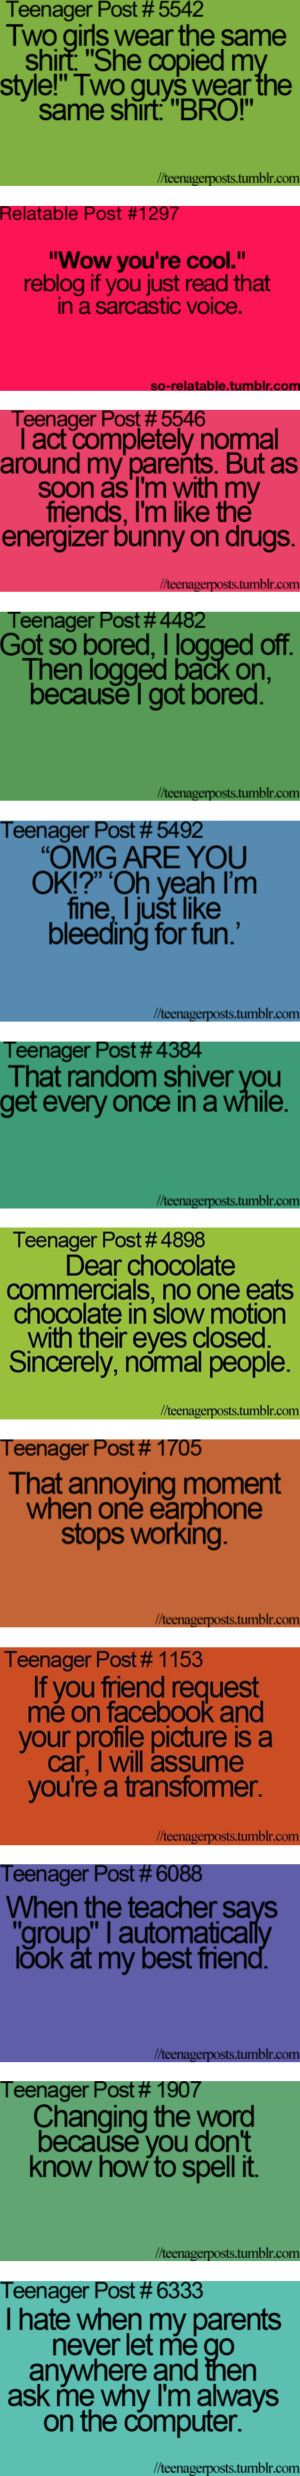 TeEnAgEr PoStS by annaloves2dance on Polyvore featuring teenager post, relate, words, pictures, text, backgrounds, funny, quotes, phrase and saying